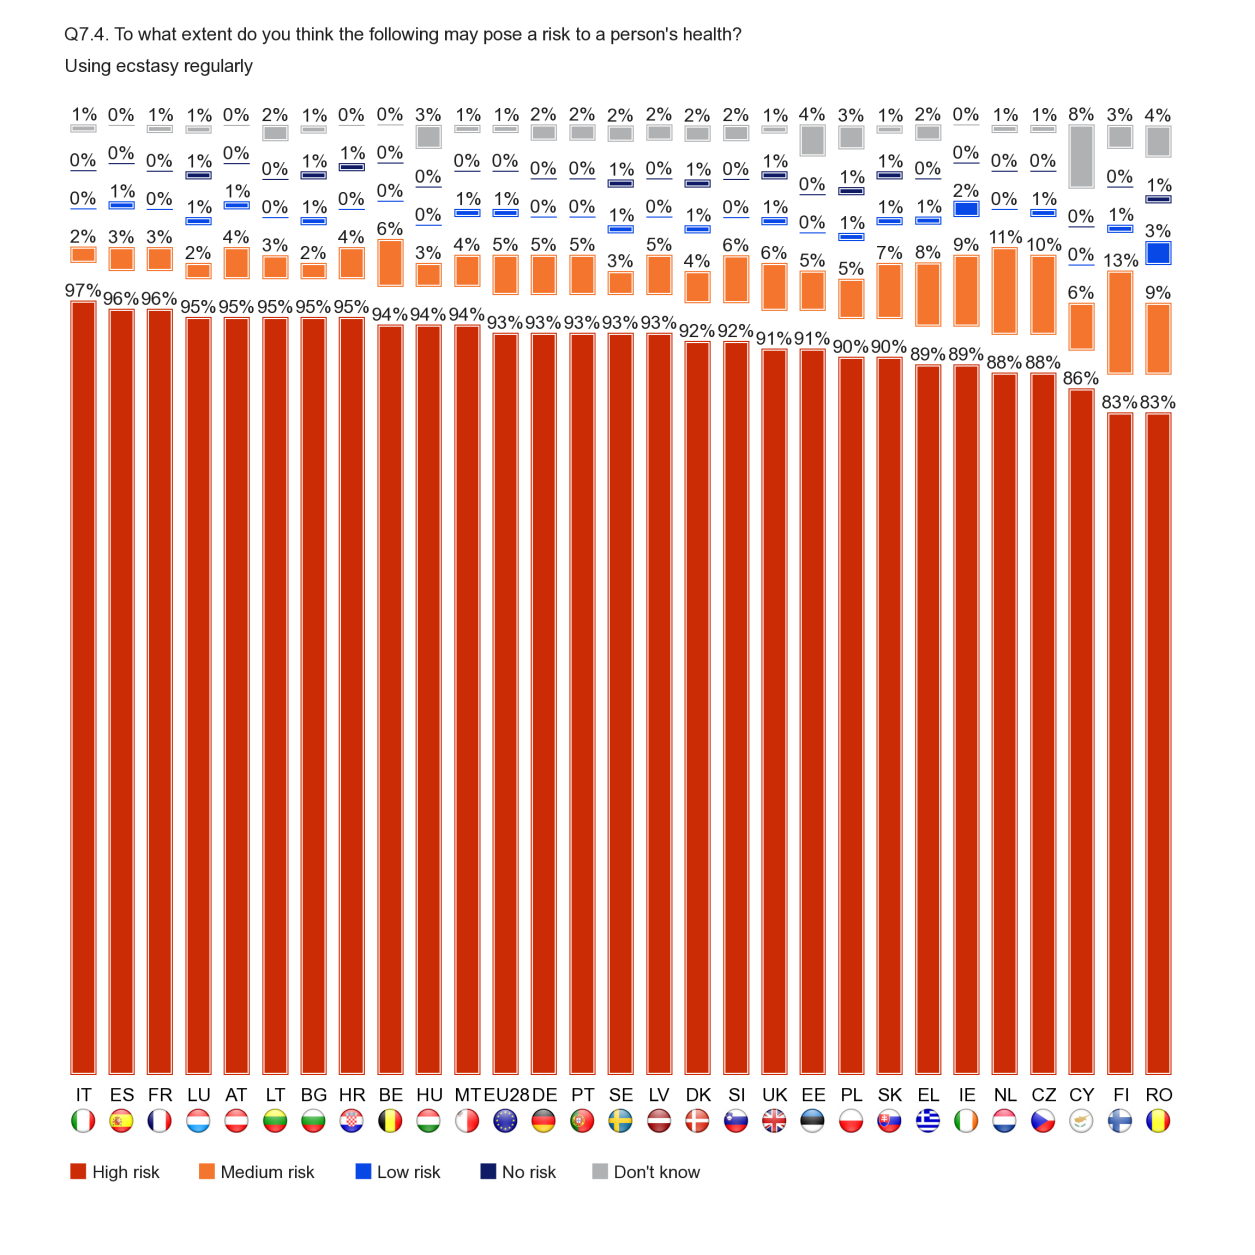 FLASH EUROBAROMETER When it comes to regular ecstasy use, at least eight out of ten respondents in each Member State think this carries a high risk to health, ranging from 97% of those in Italy, and